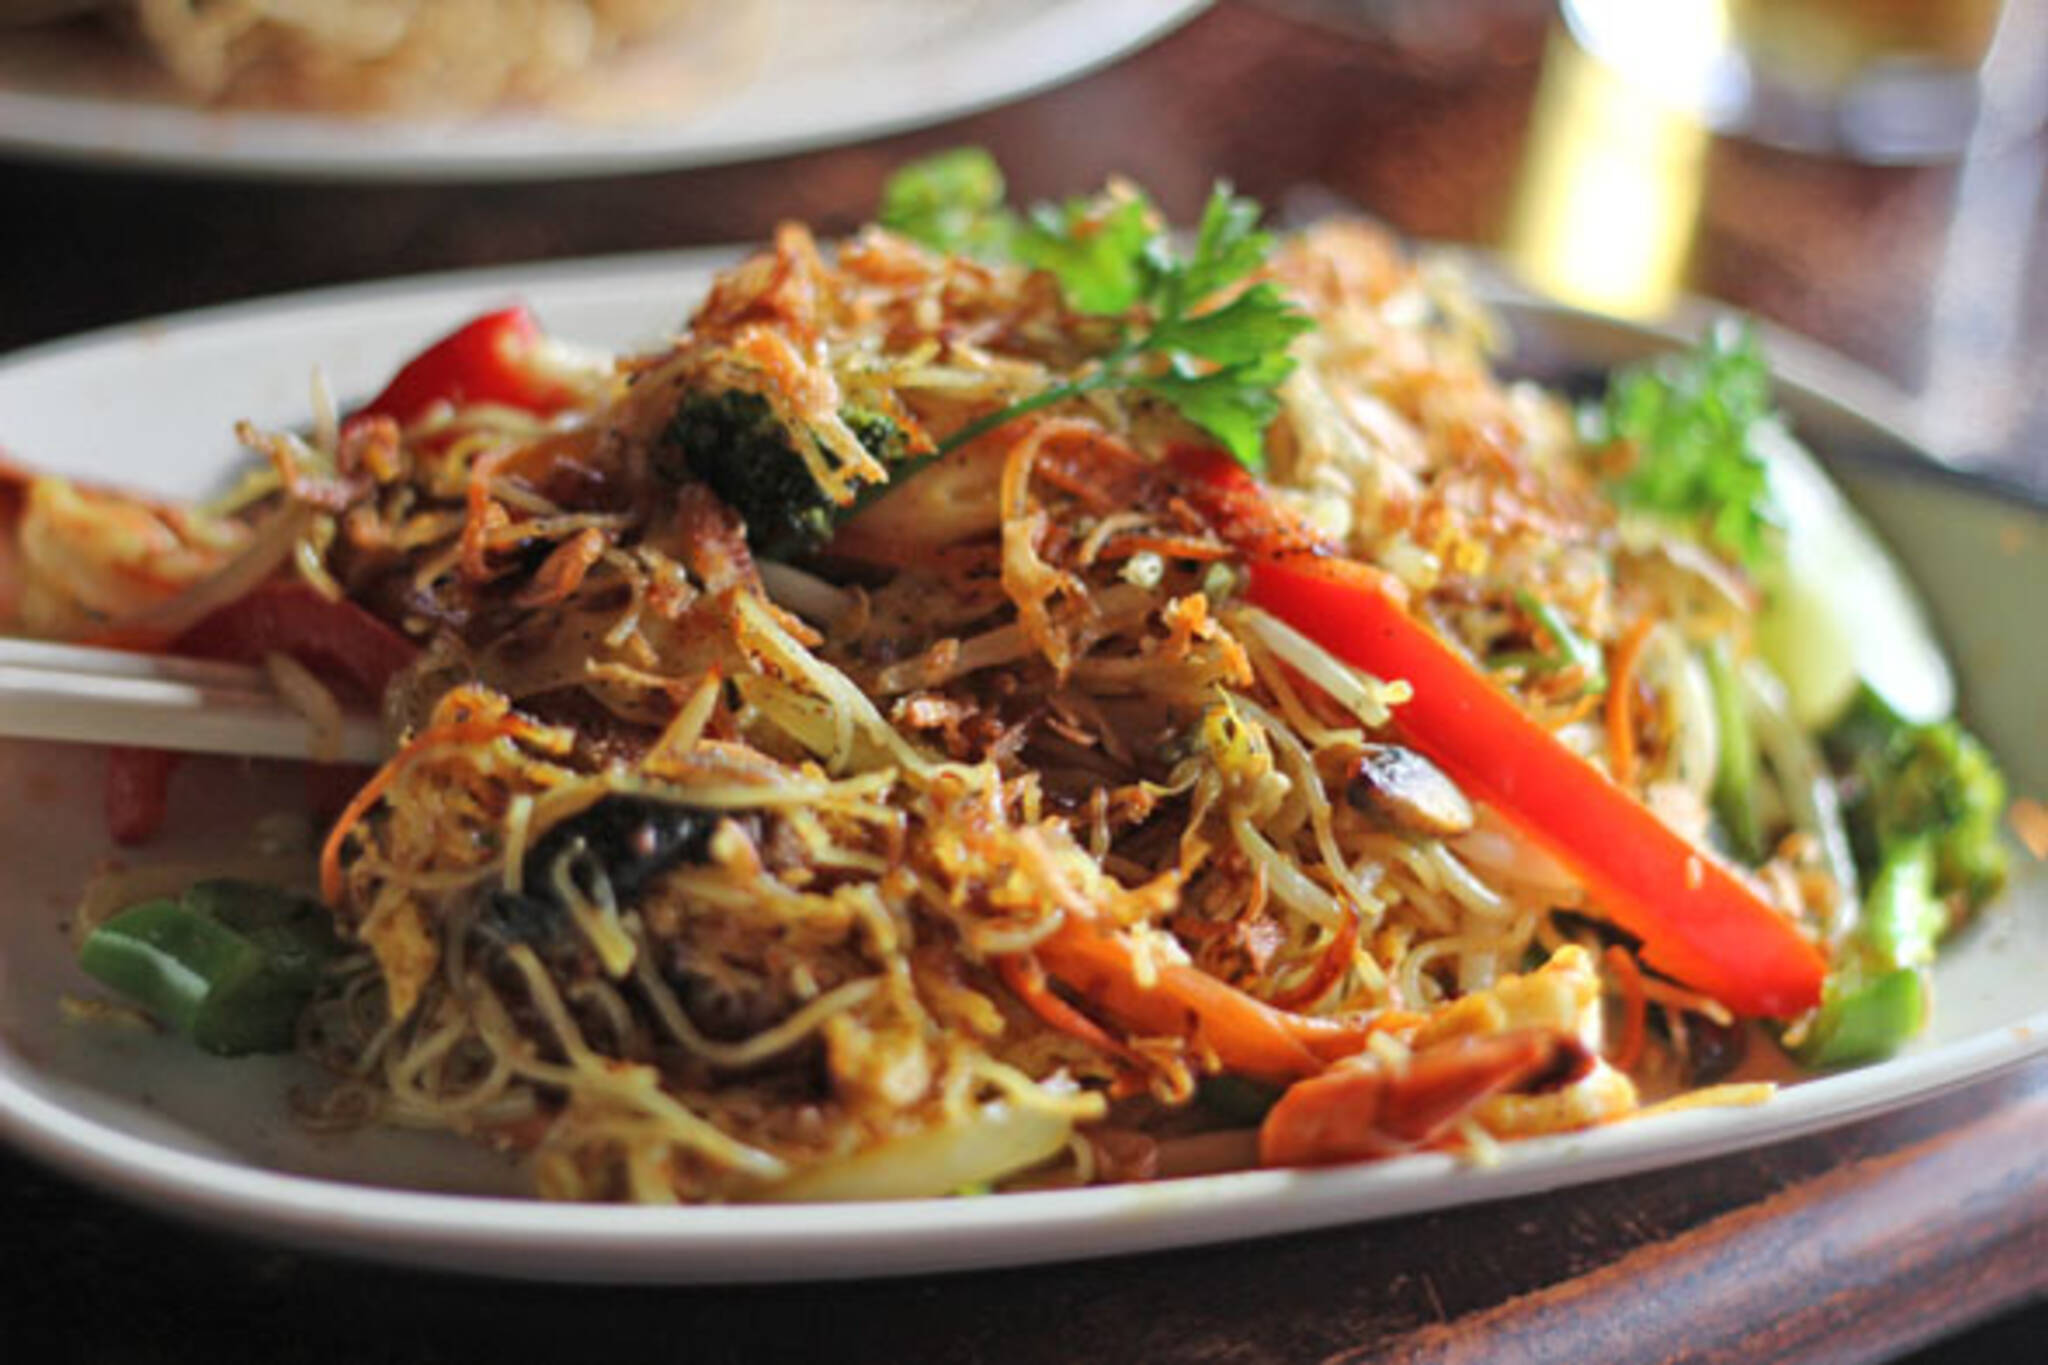 Pour Girl Singapore Noodles